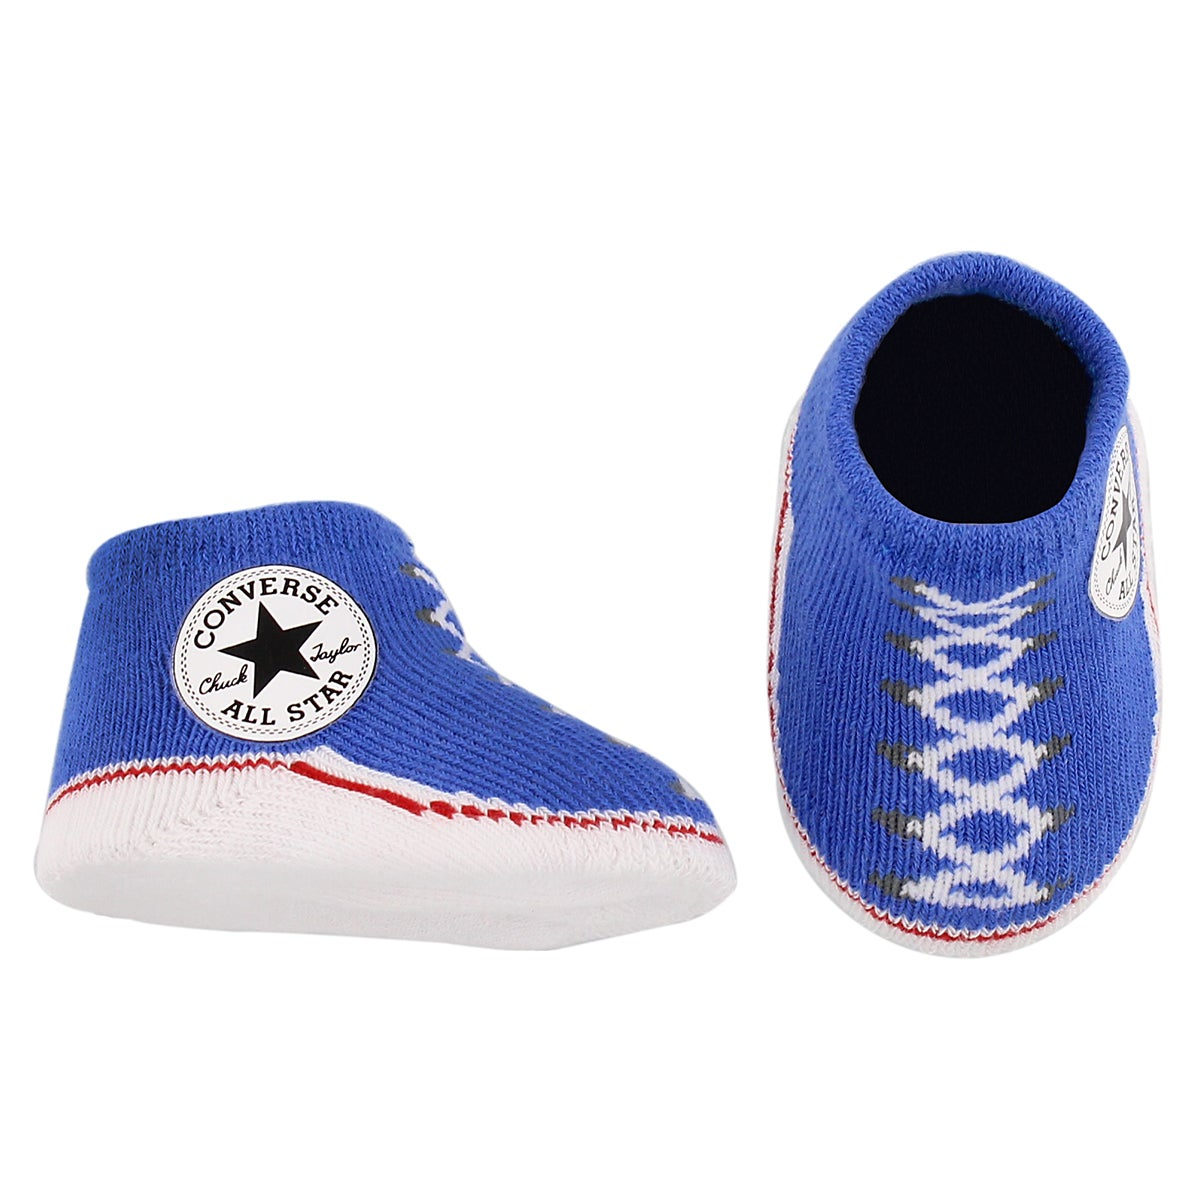 Infs Converse blue hat and bootie combo